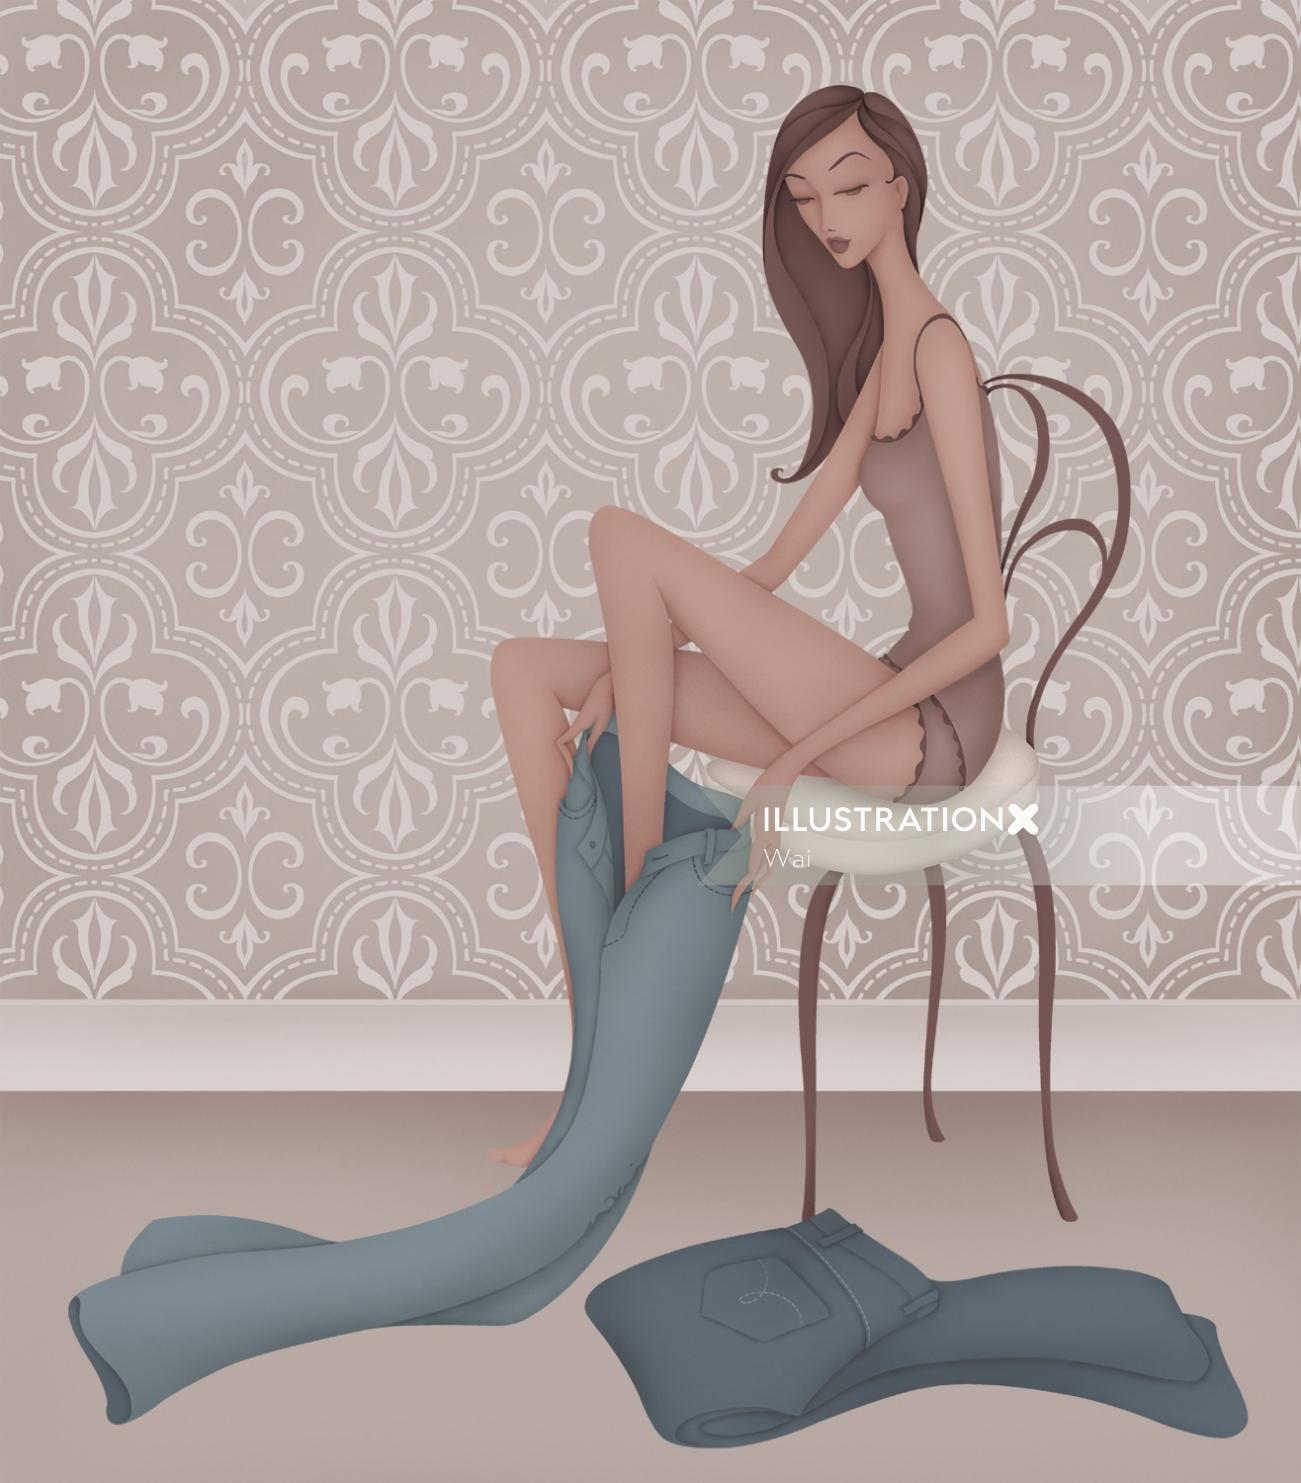 illustration of Woman sitting in chair trying on jeans